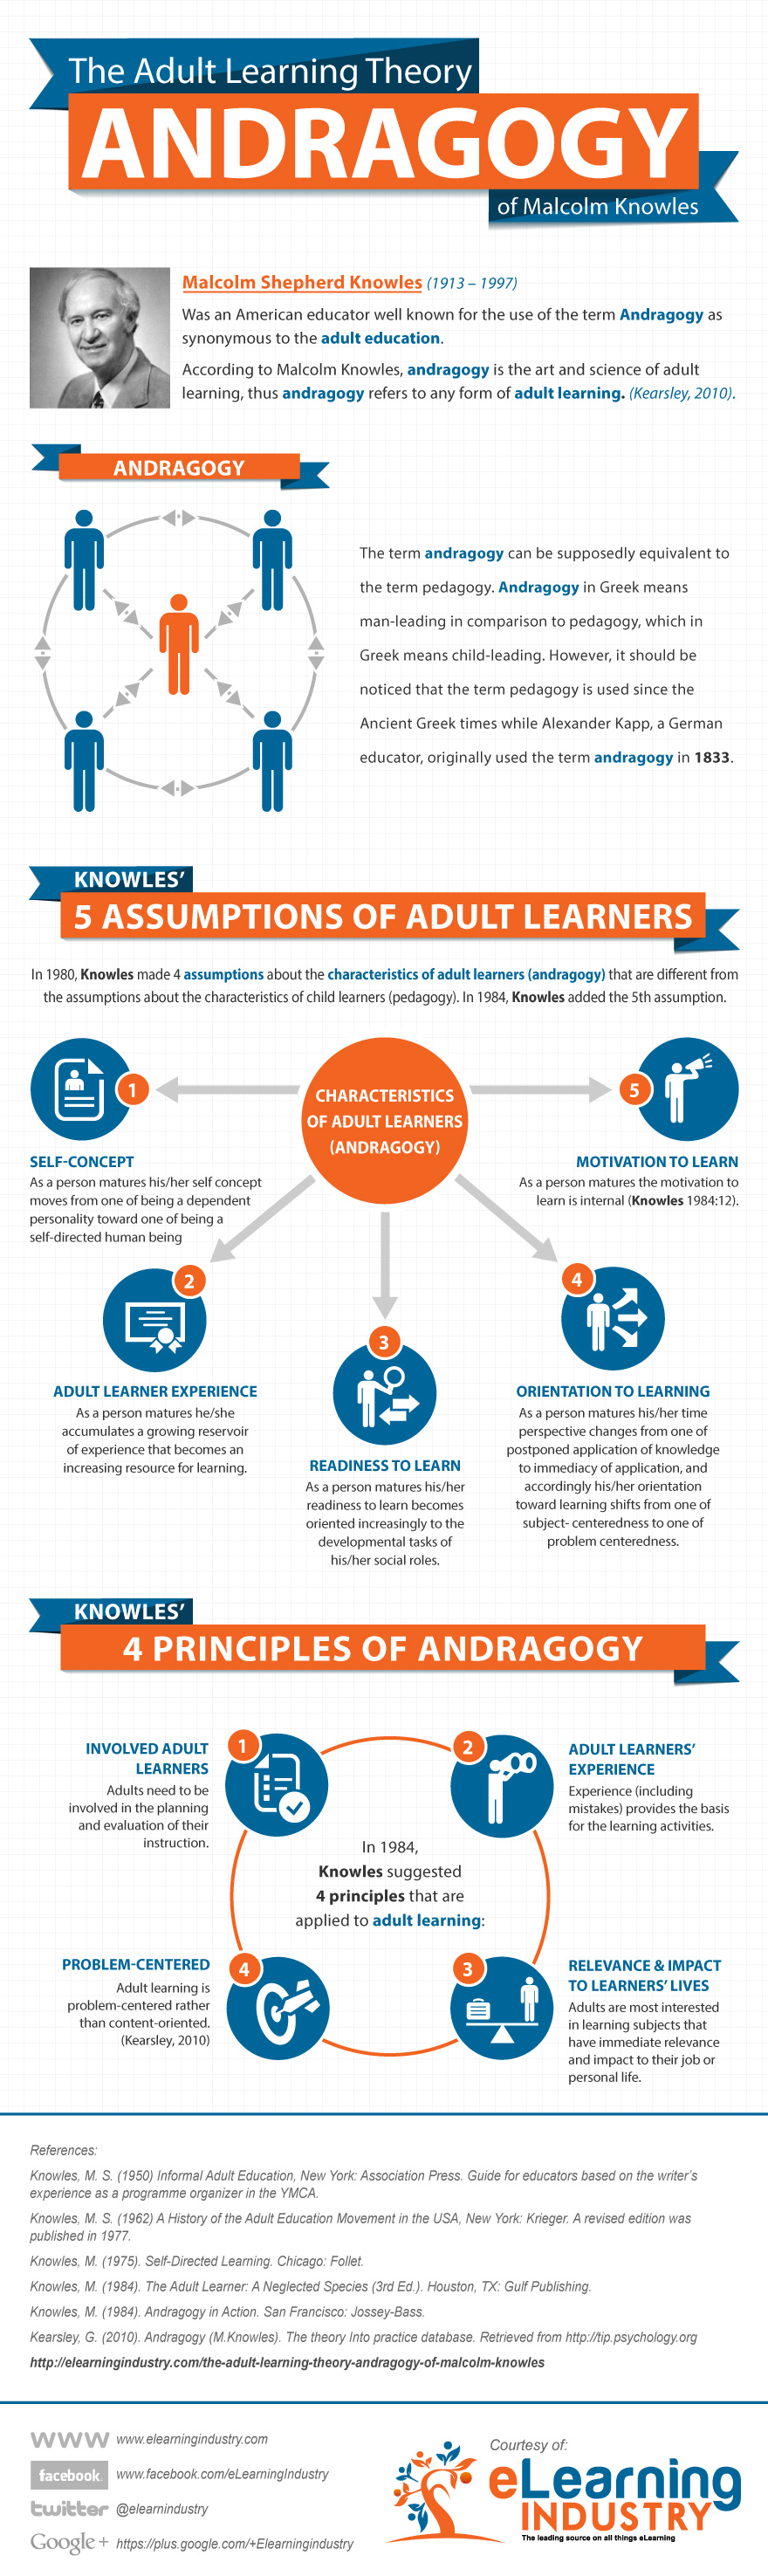 Andragogy visually explained